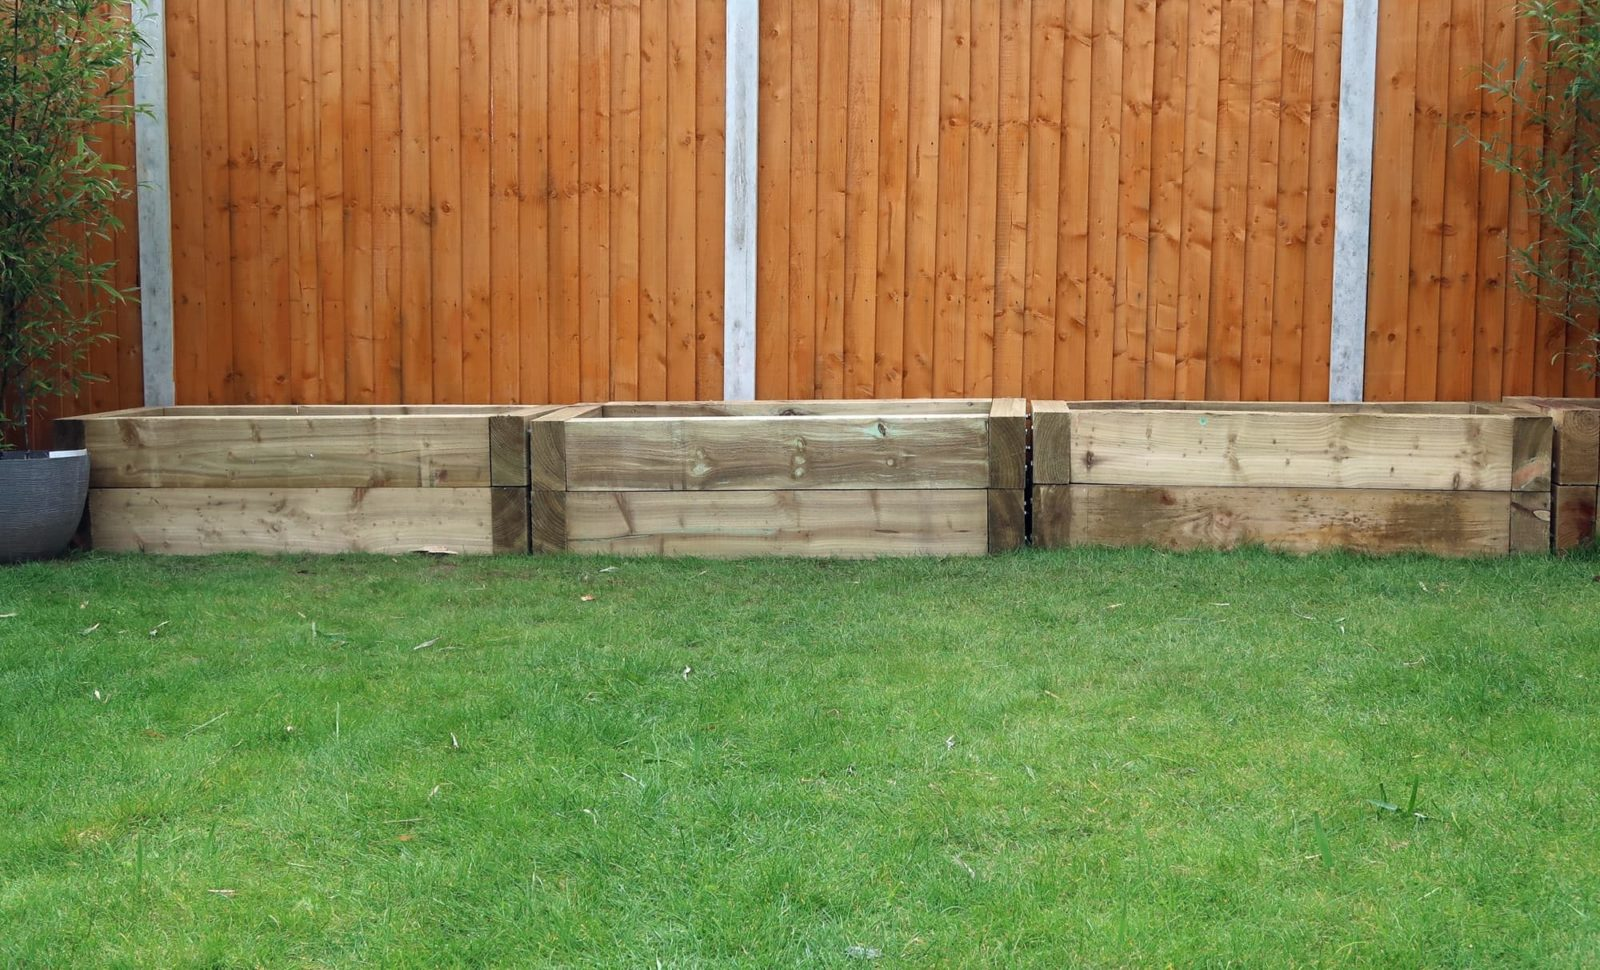 raised wooden trough planters with a lawn in the foreground and fence in the background